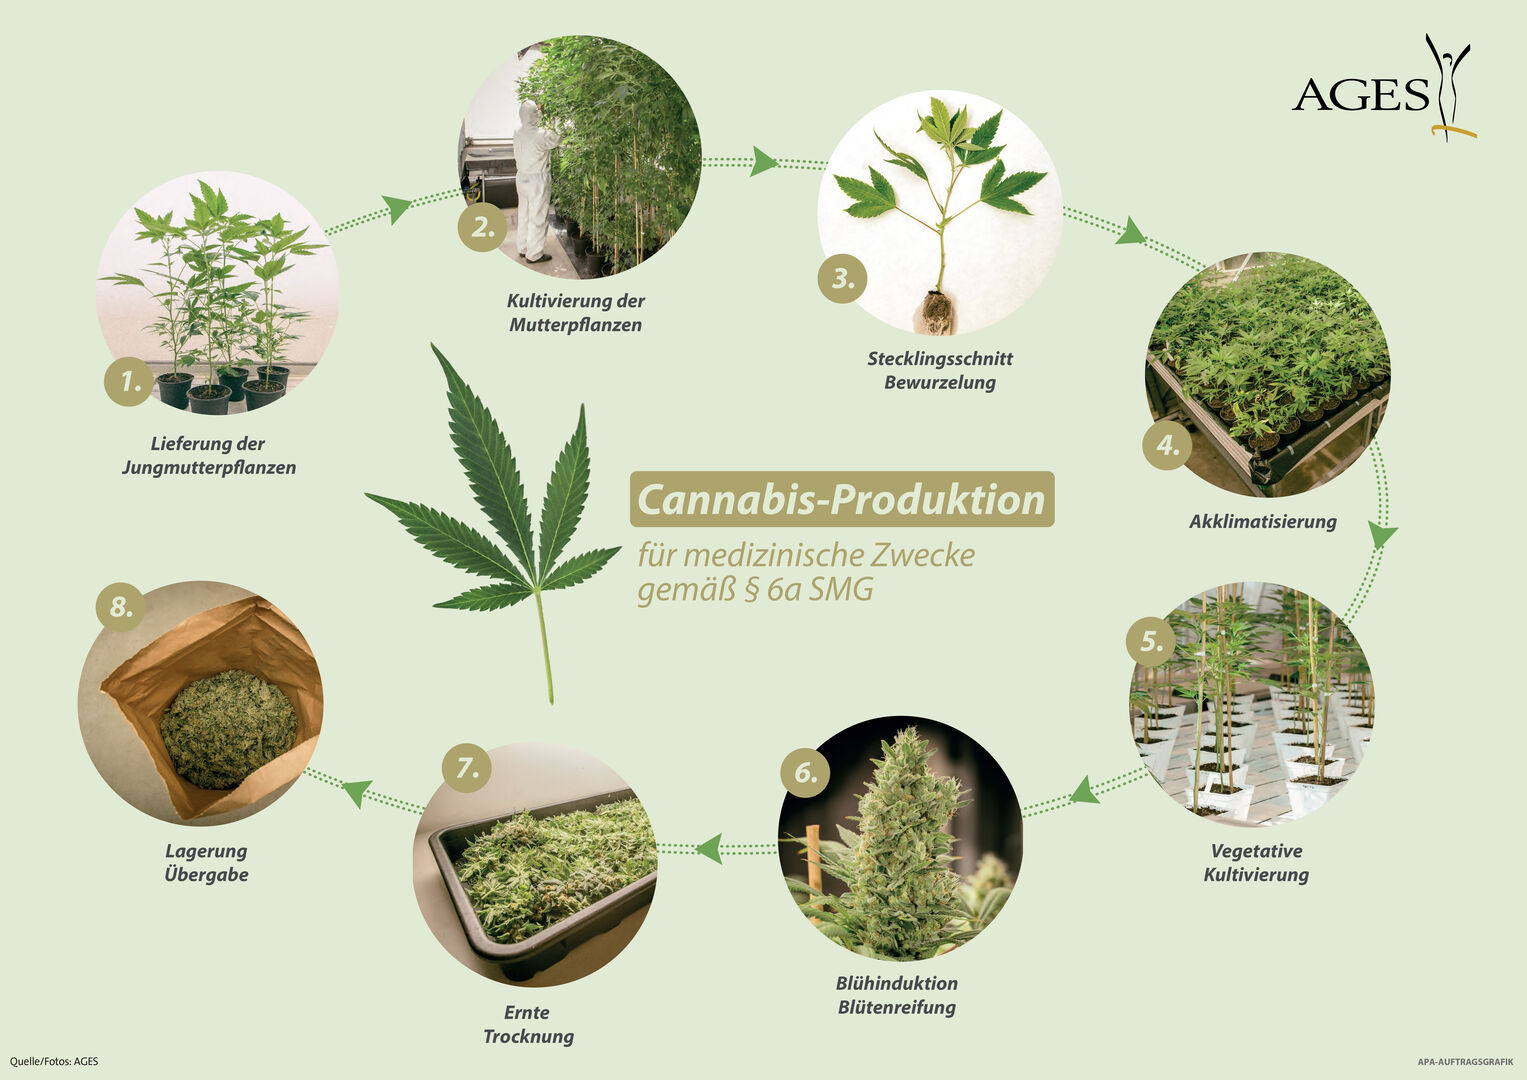 Cannabis-Produktion (FOTO: AGES)